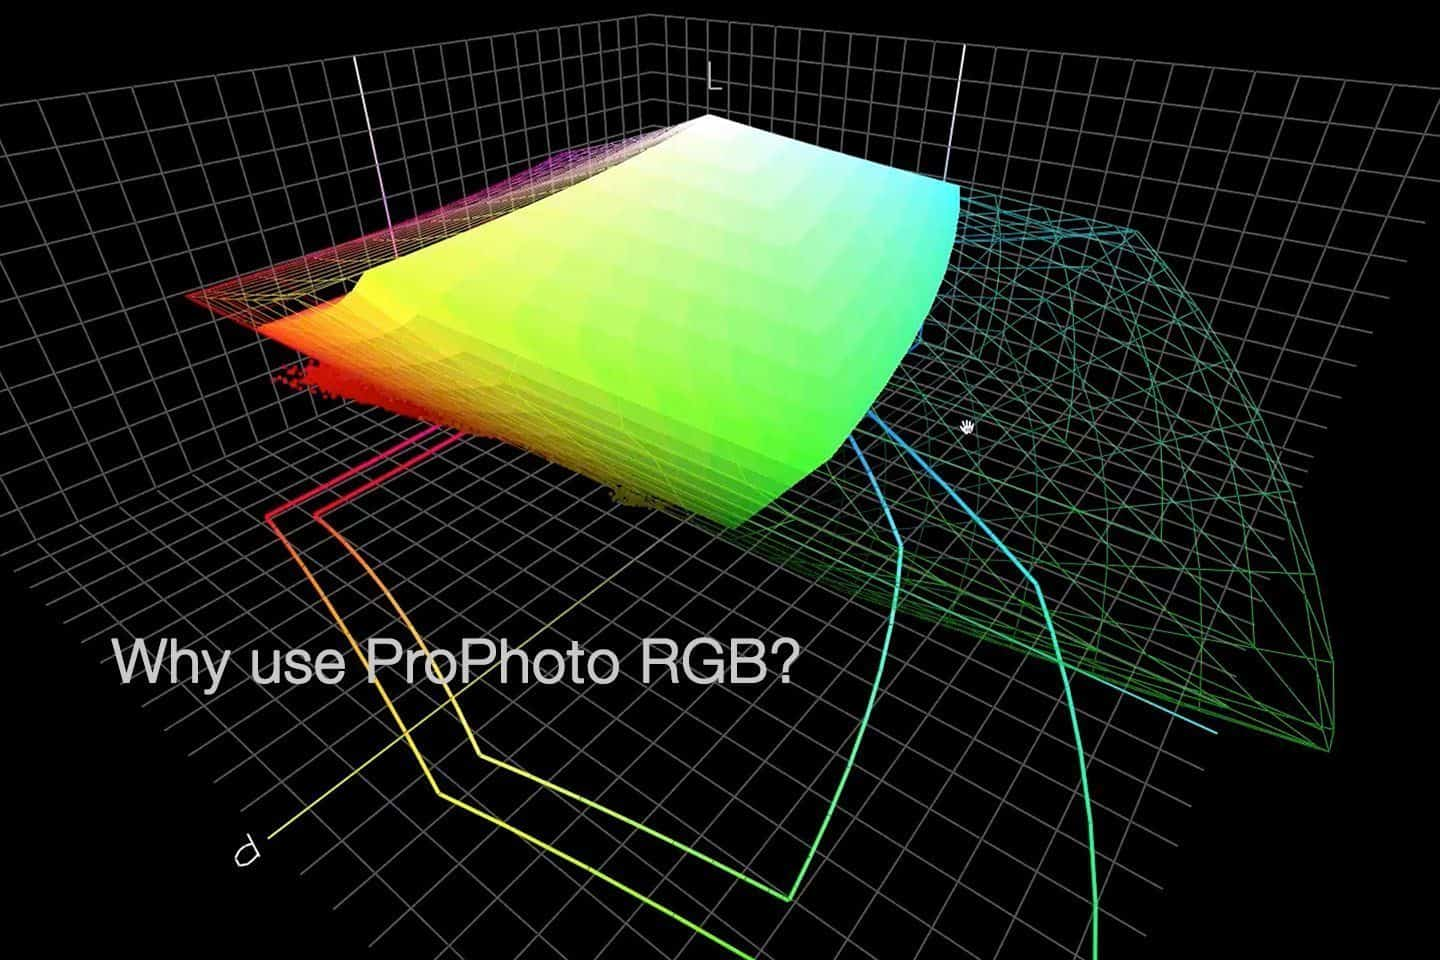 Why Use ProPhoto RGB?